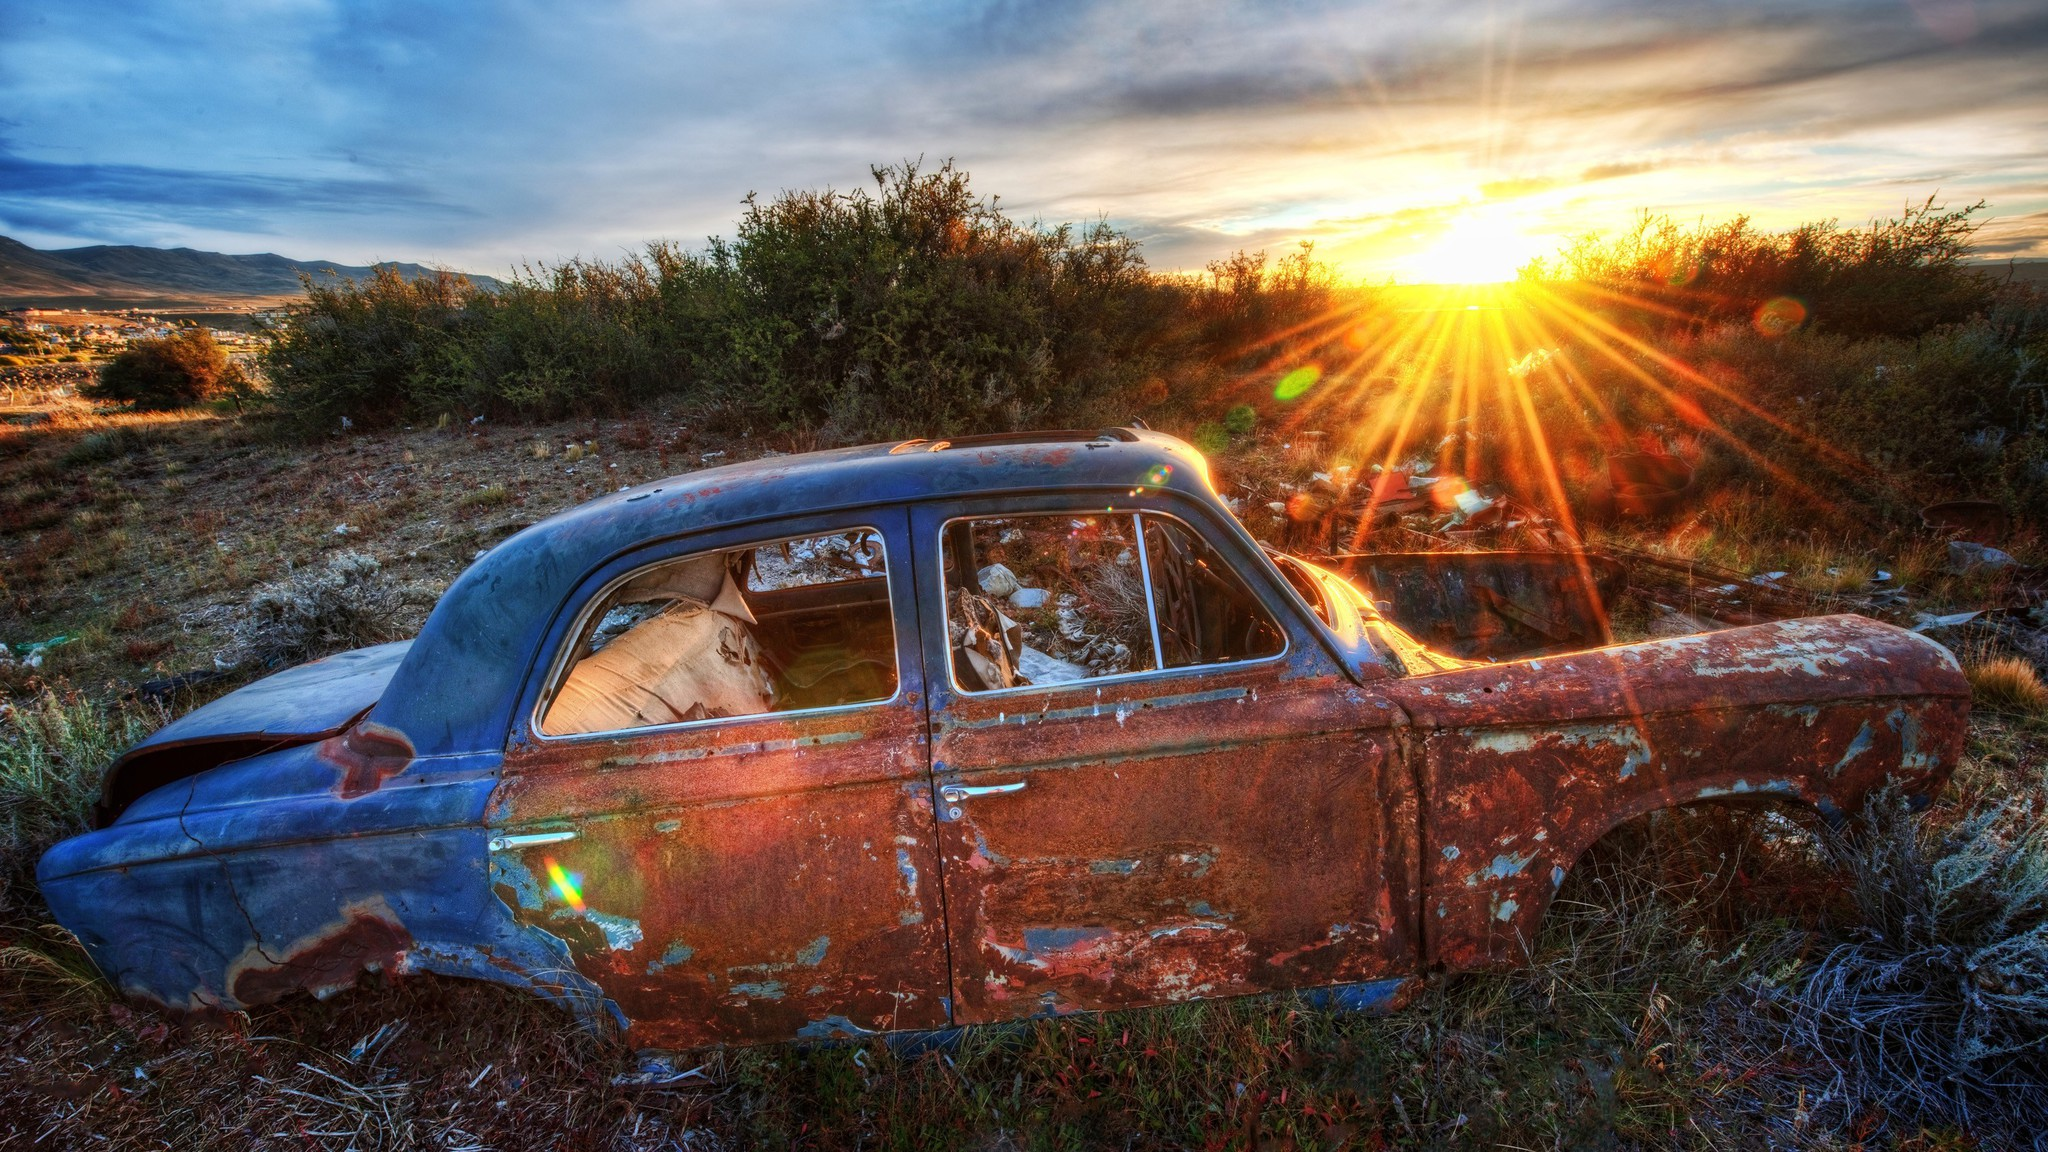 Classic Old Car Wallpapers 1600x900 Sunset Old Car Wallpaper Allwallpaper In 11576 Pc En